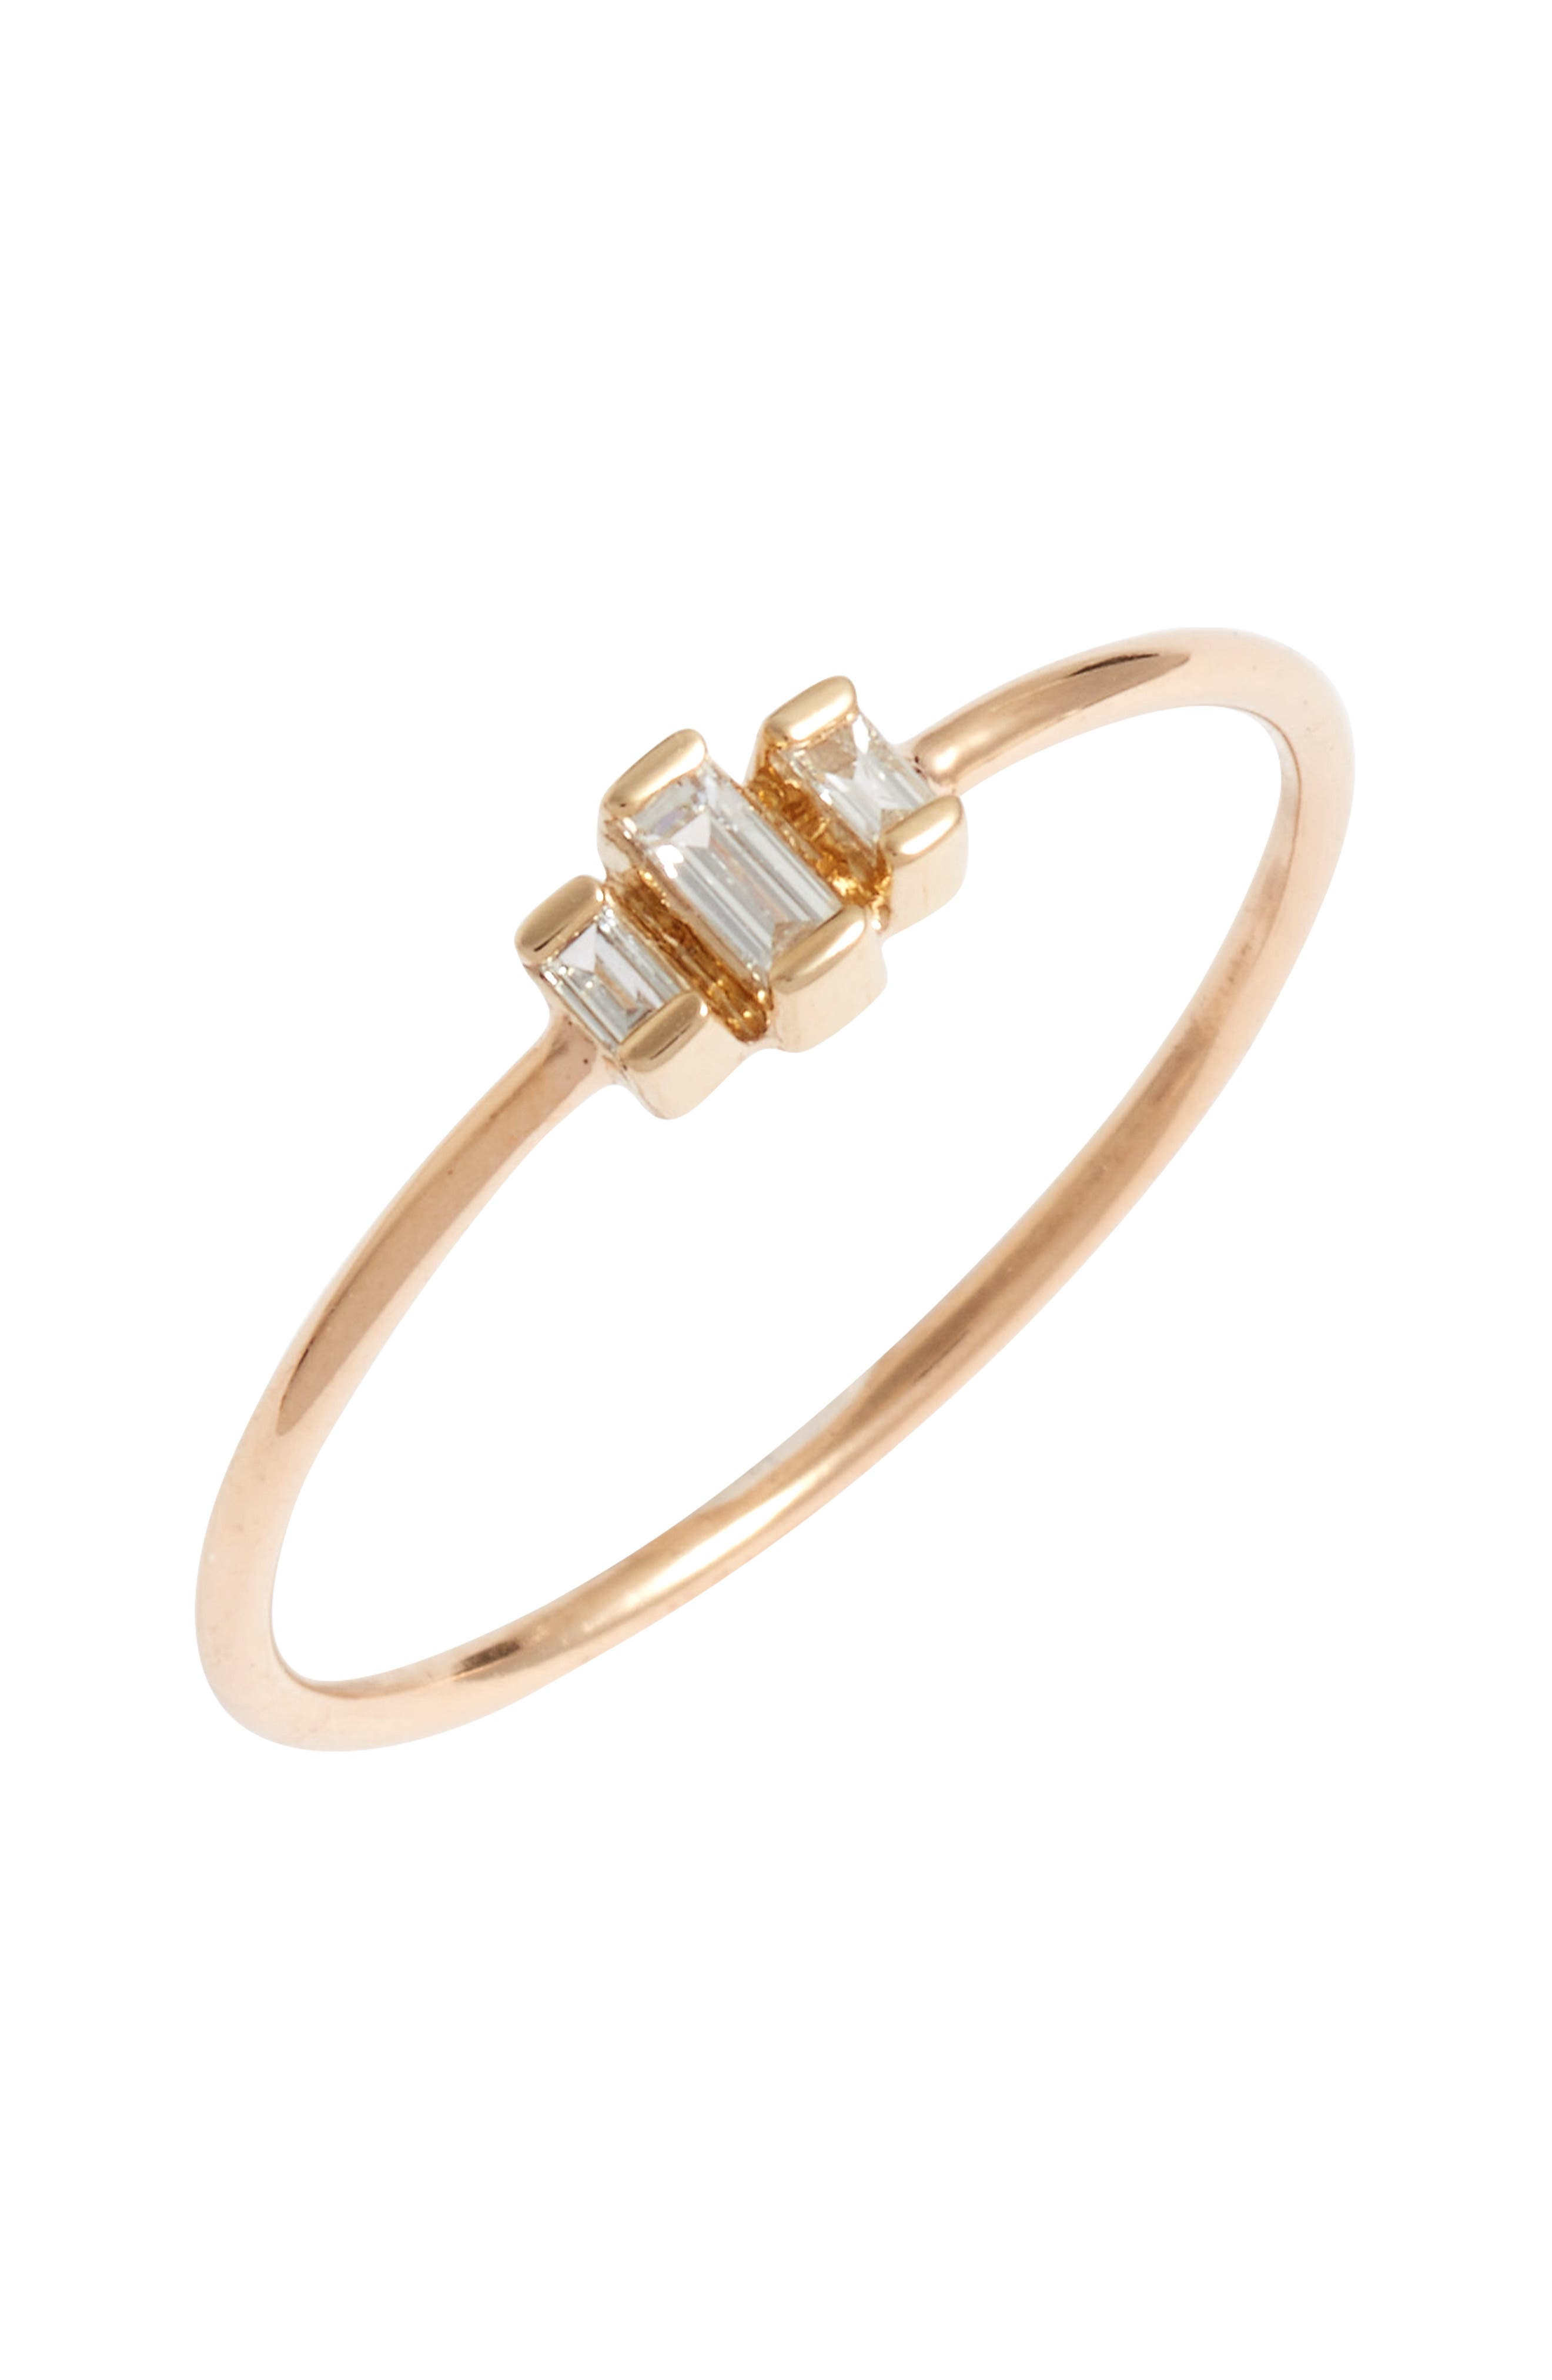 Diamond Baguette Stack Ring,                             Main thumbnail 1, color,                             YELLOW GOLD